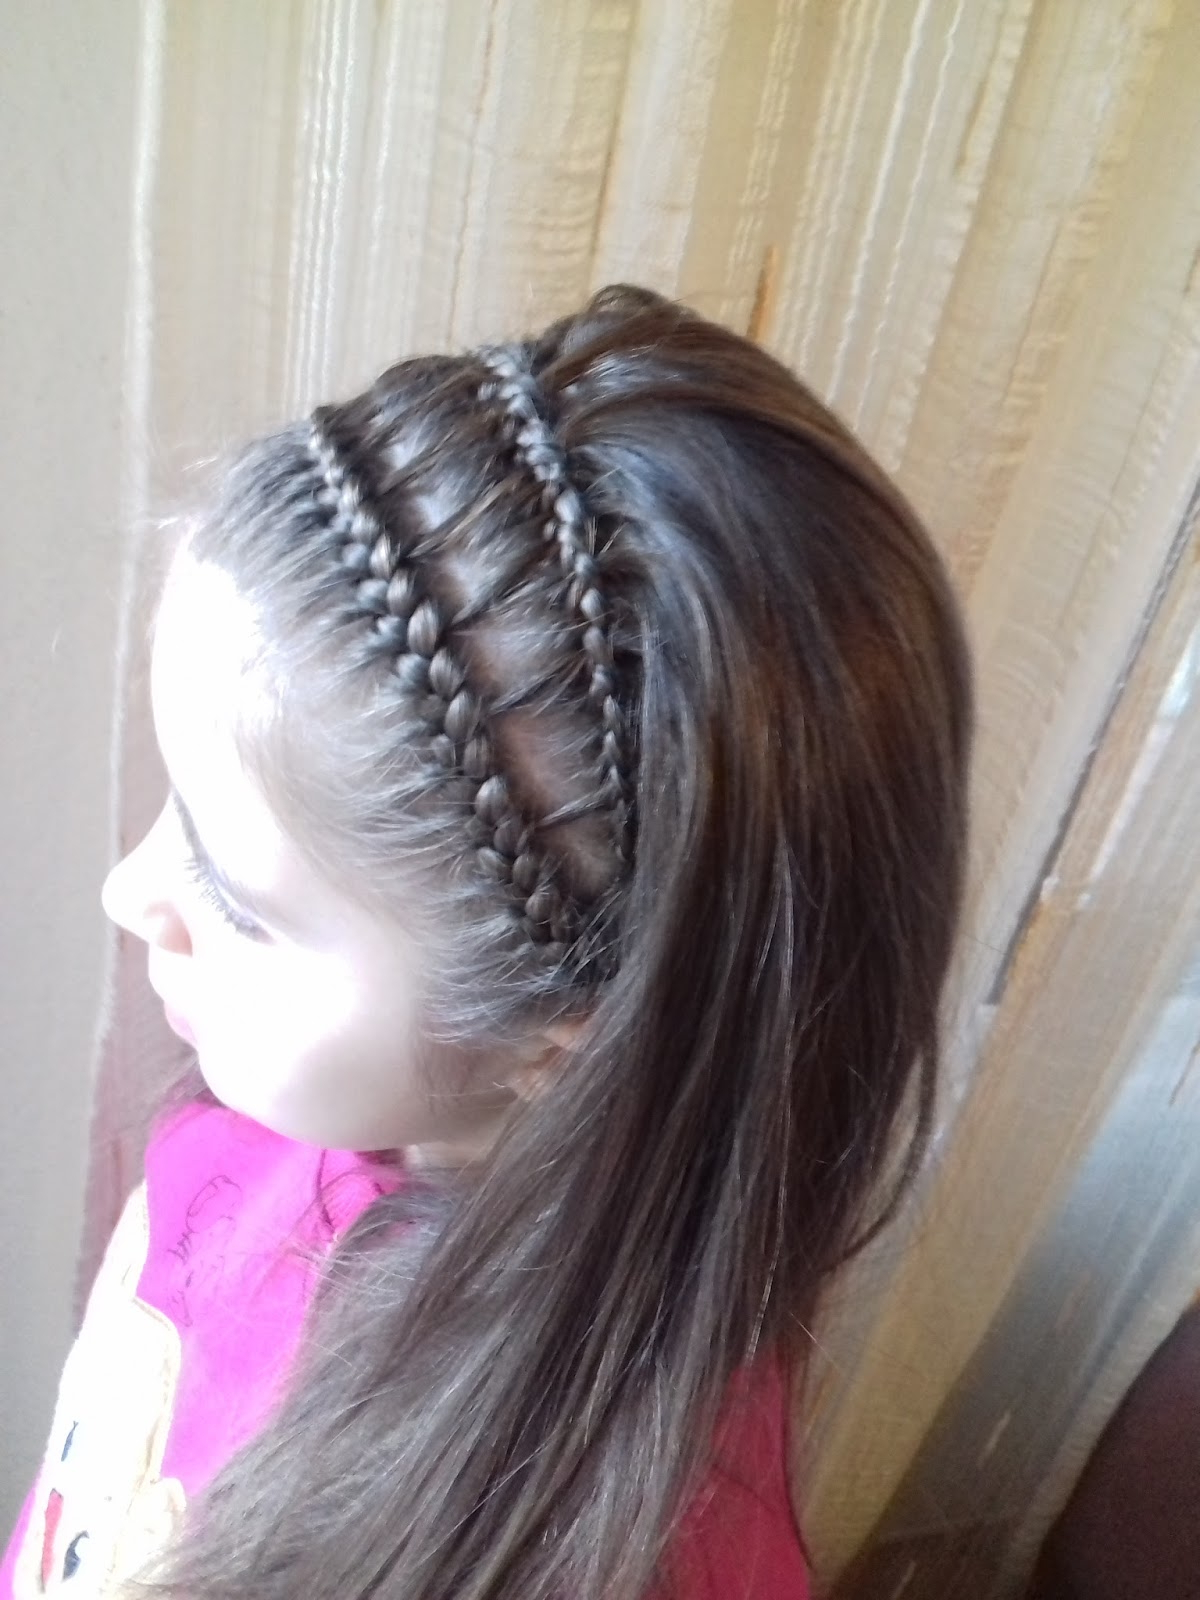 Well Liked Corset Braid Hairstyles Throughout Fashionable Hair Braids: Few Ways Of Corset Braiding (View 18 of 20)